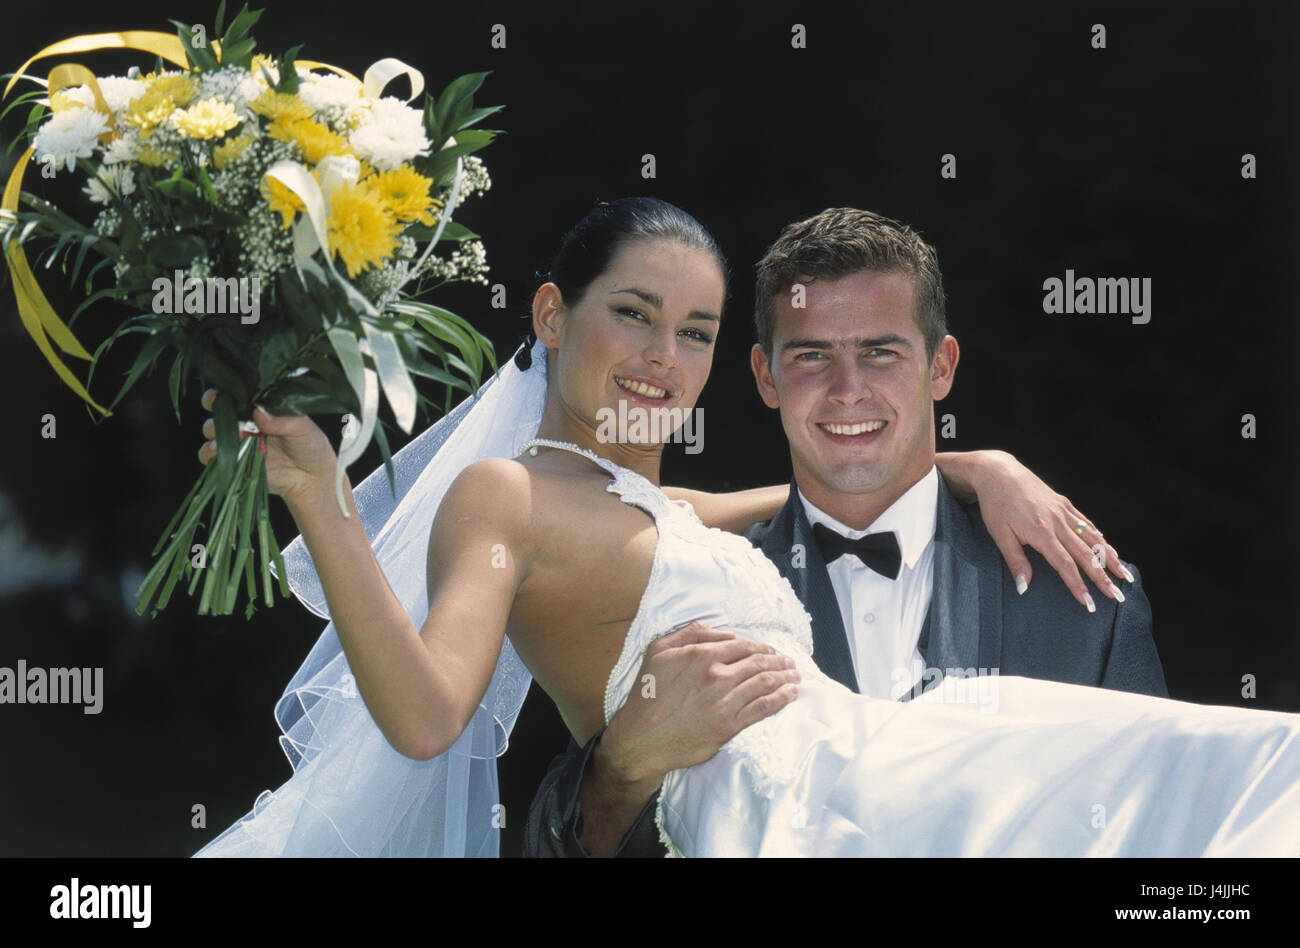 Bridal Carry Stock Photos Bridal Carry Stock Images Alamy